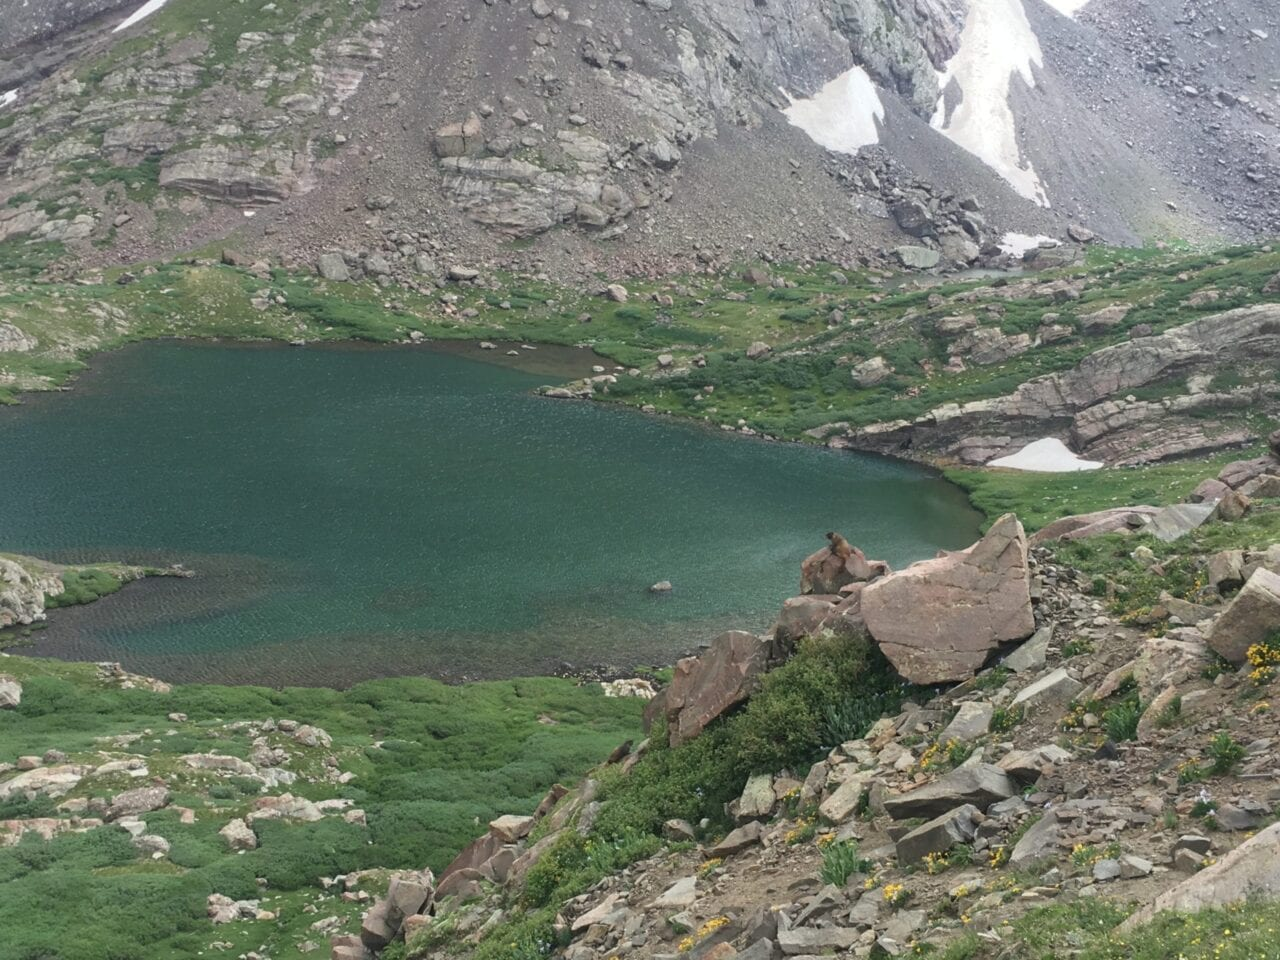 A view from a ridge showcases a blue lake surrounded by grass and rocks.